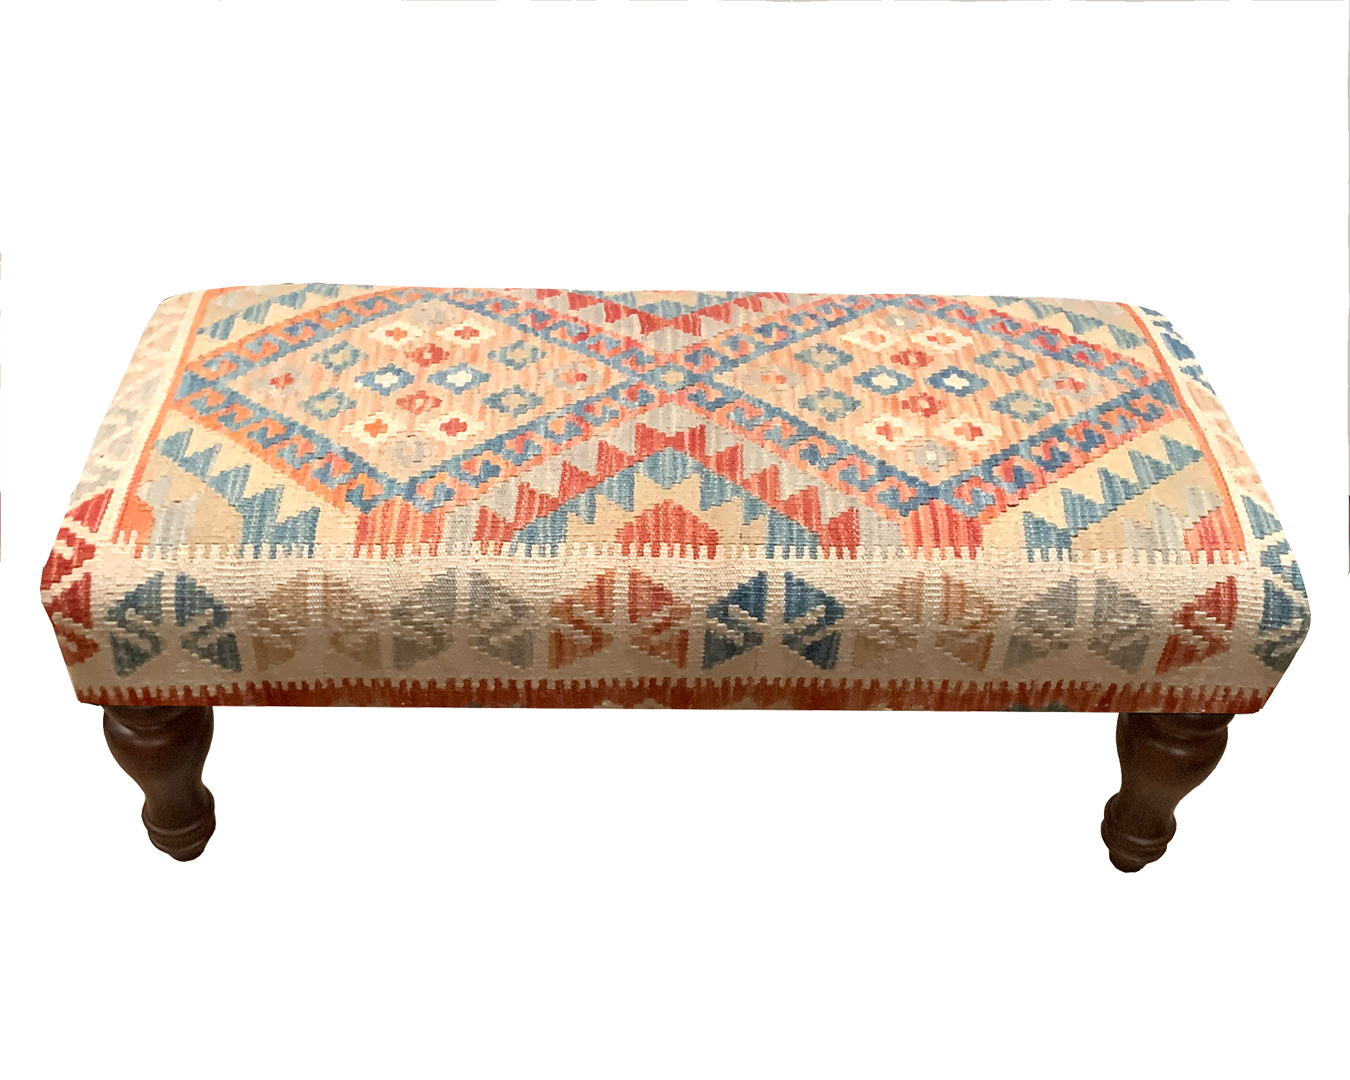 90x40cms Kilim Bench Stool SOLD